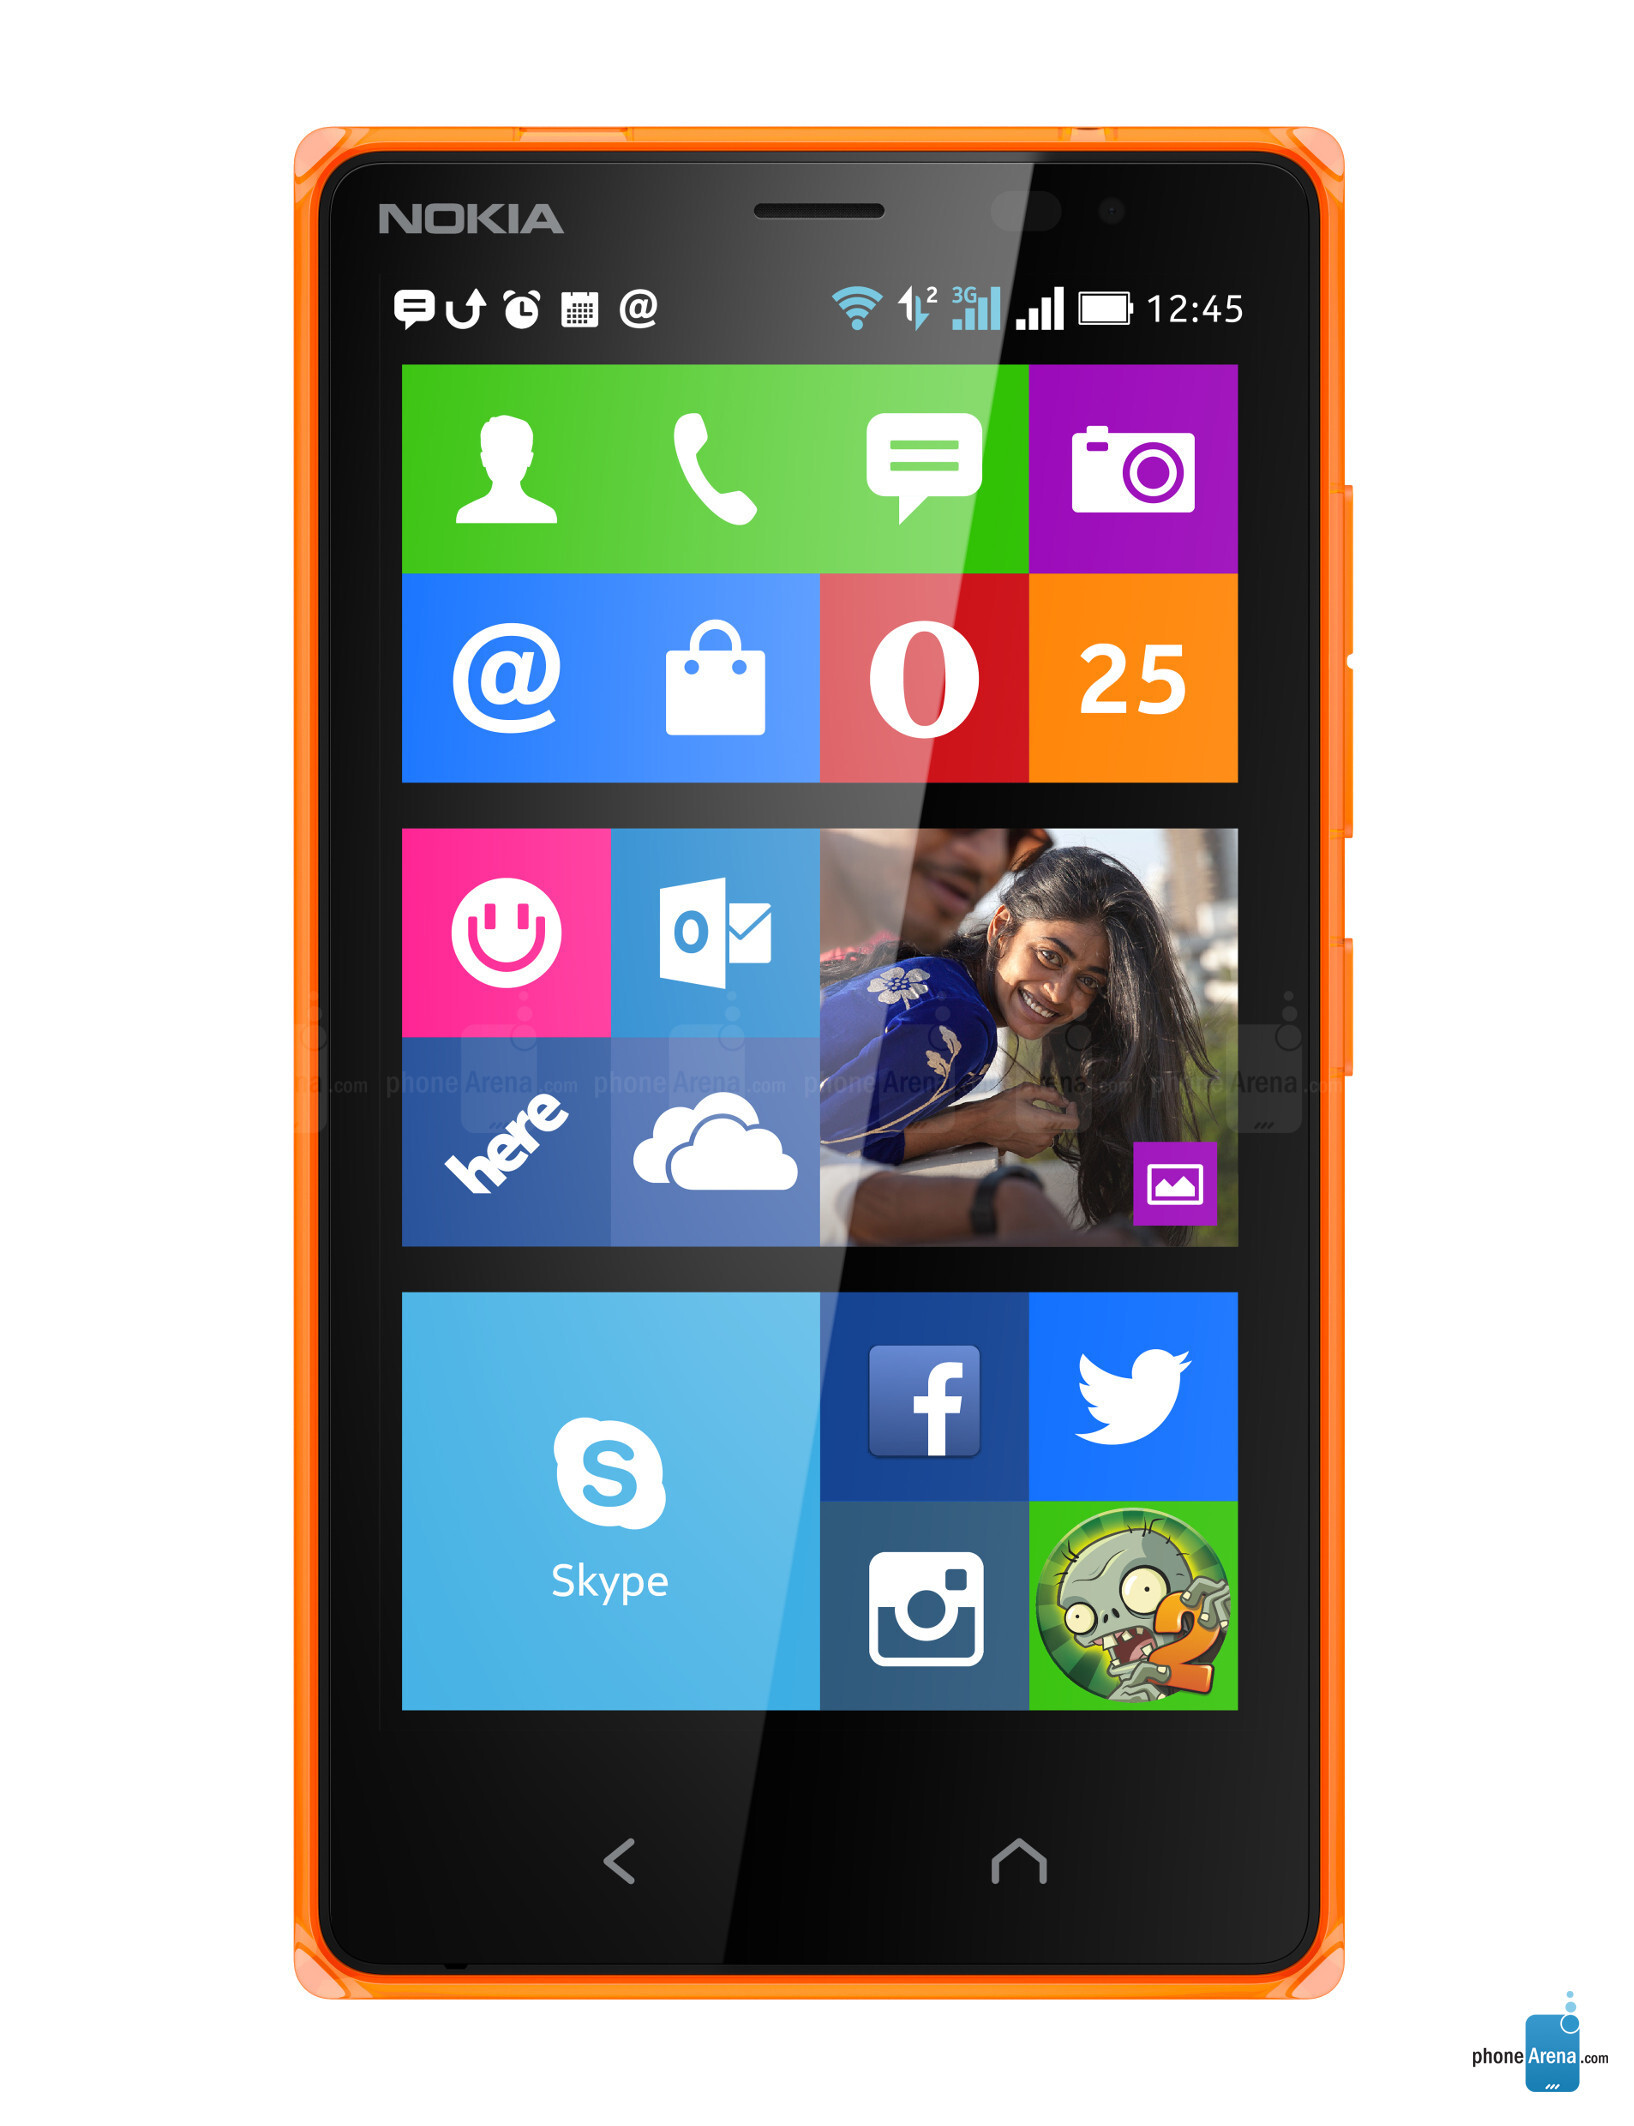 photo edit software for nokia x2 02